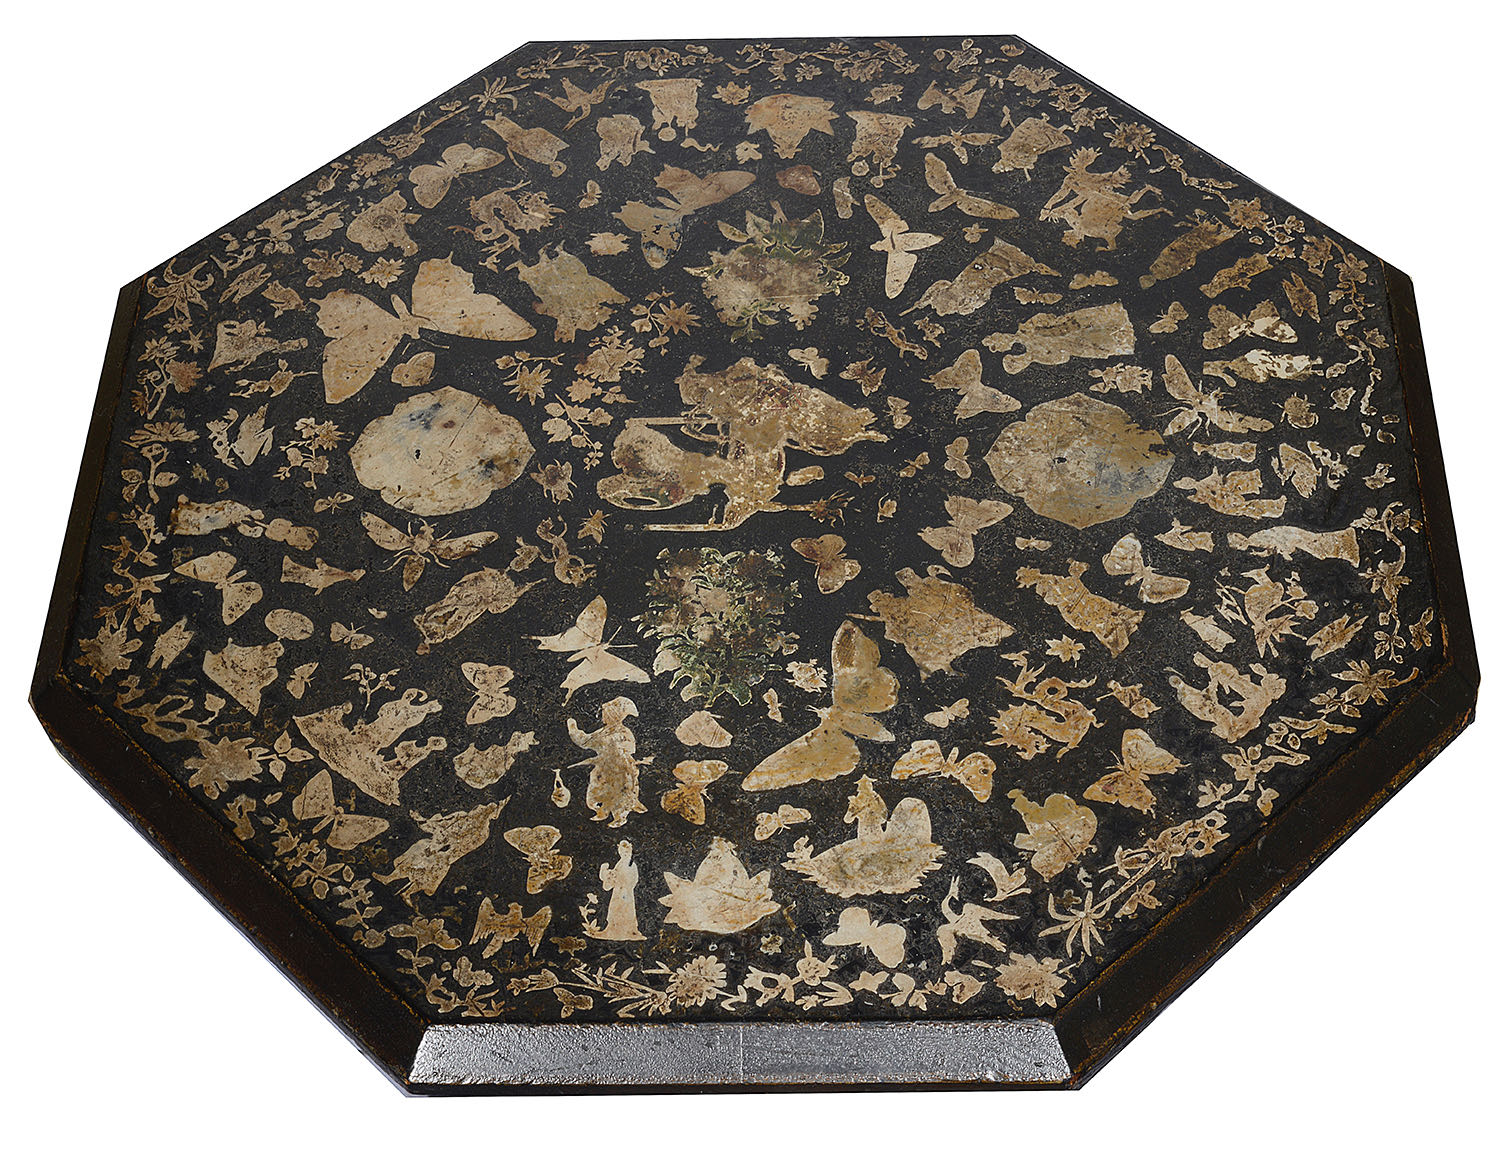 Lot 2 - A Victorian ebonised and gilt decoupage decorated occasional table